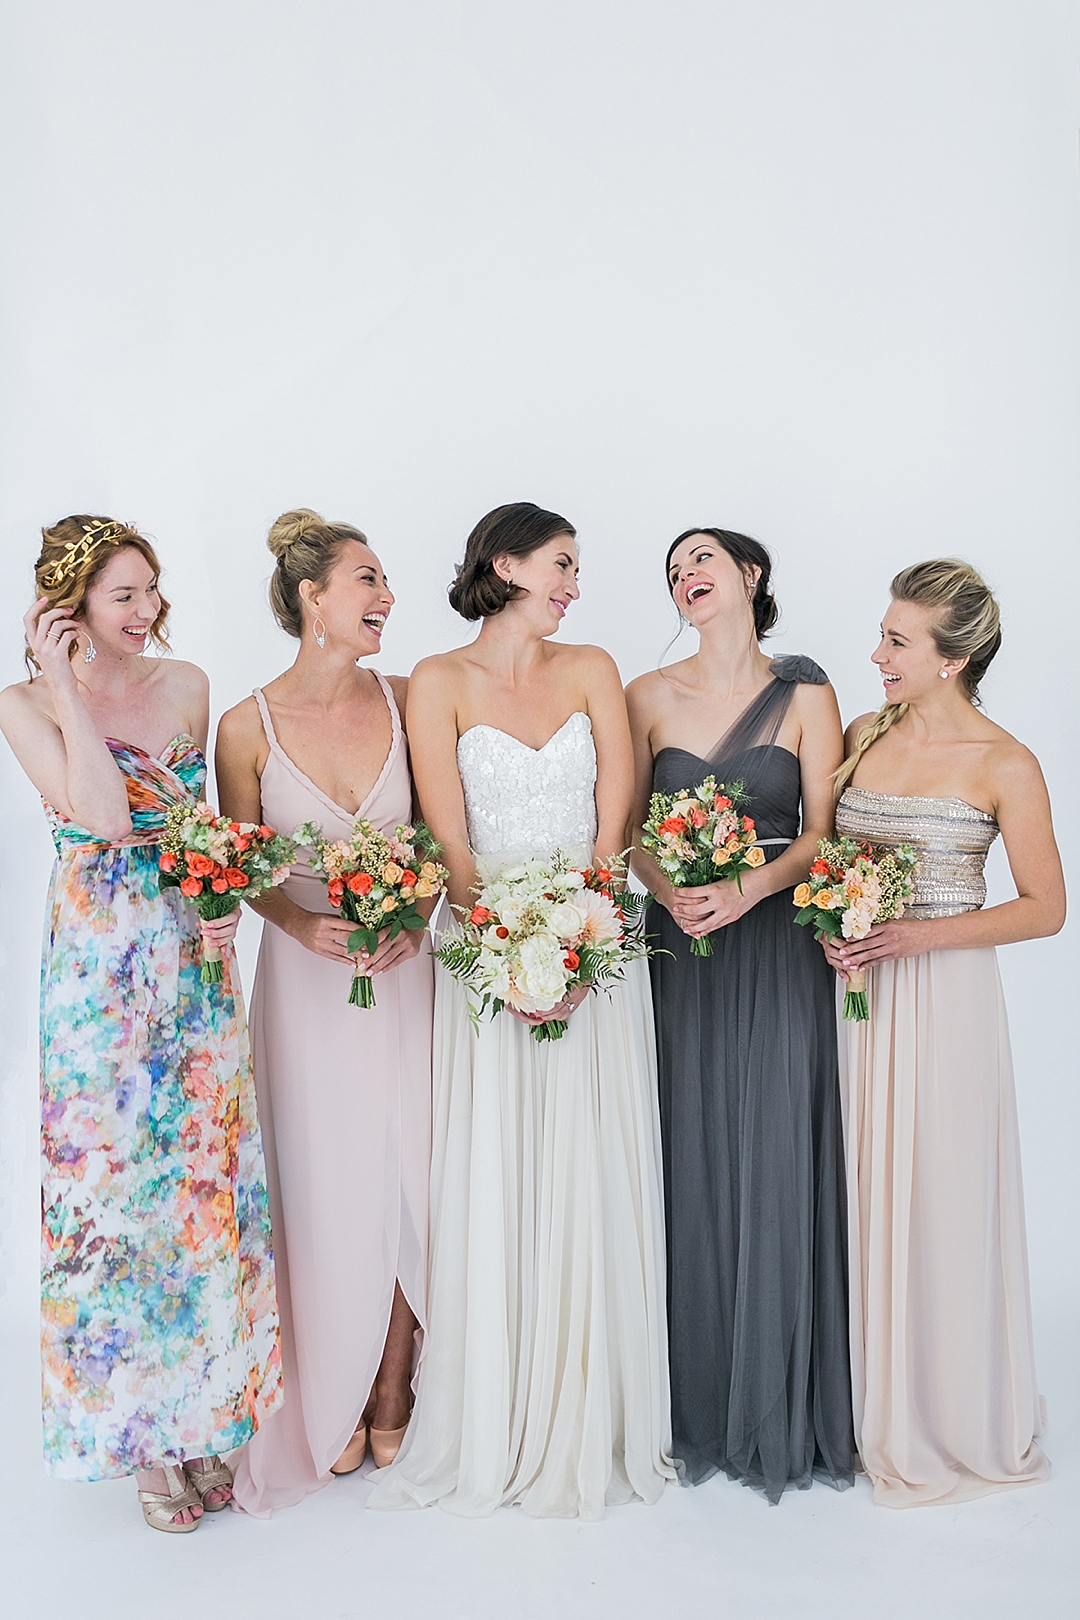 ©AlexisJuneWeddings | Aisle Society Brand Shoot, Chicago, IL | NYC + Destination Wedding Photographer